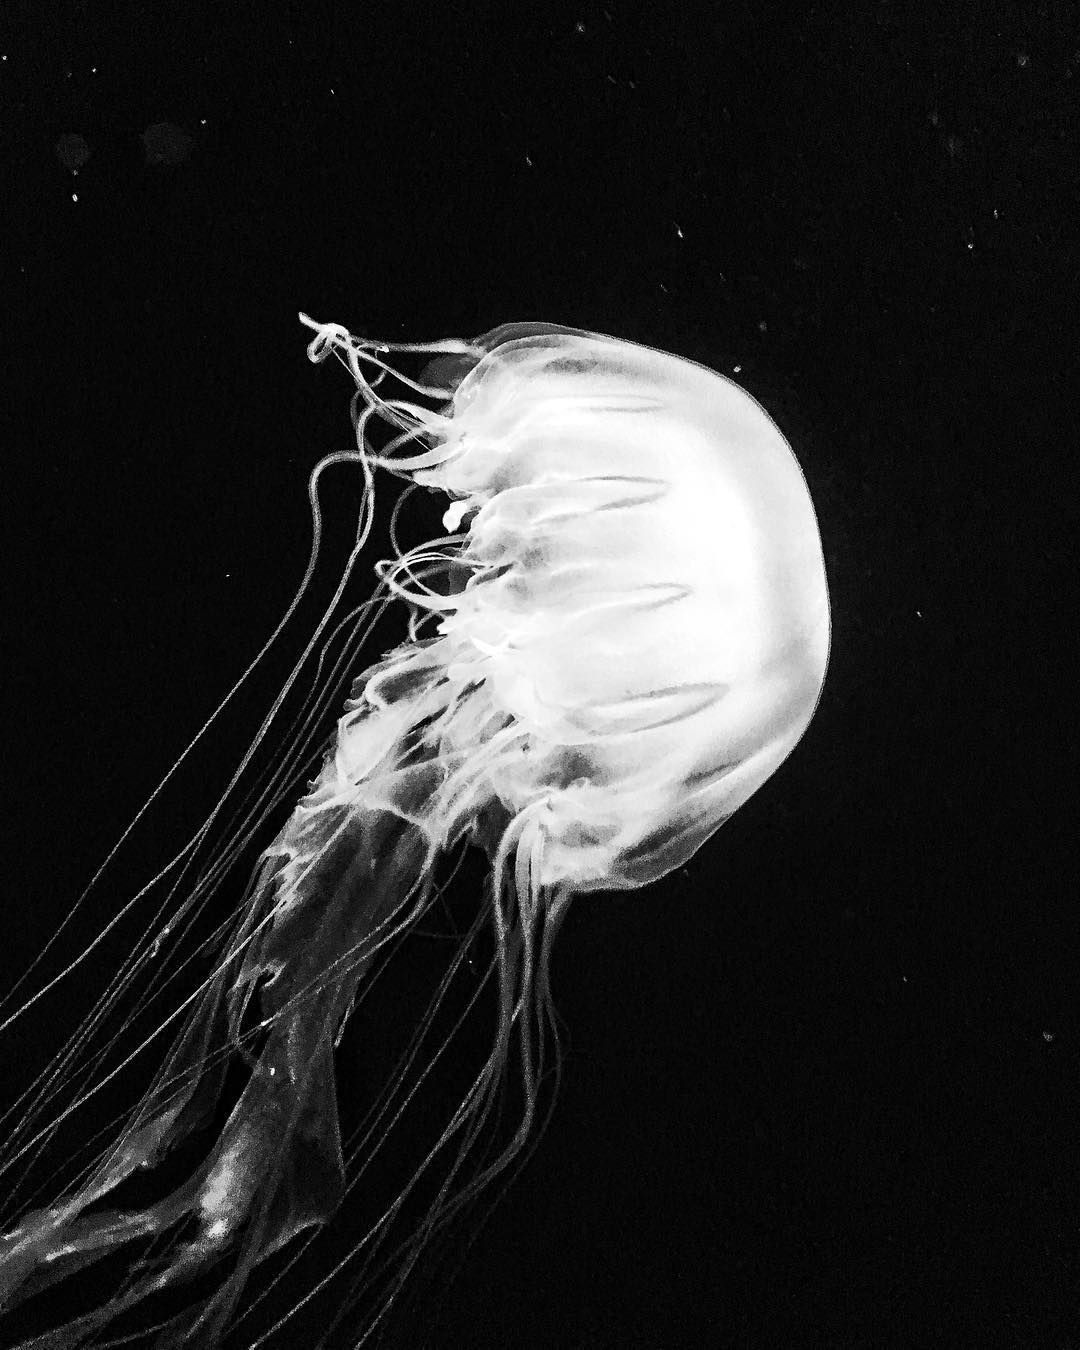 Jelly sanfrancisco aquarium jellyfish black and white photography adamwhittaker com